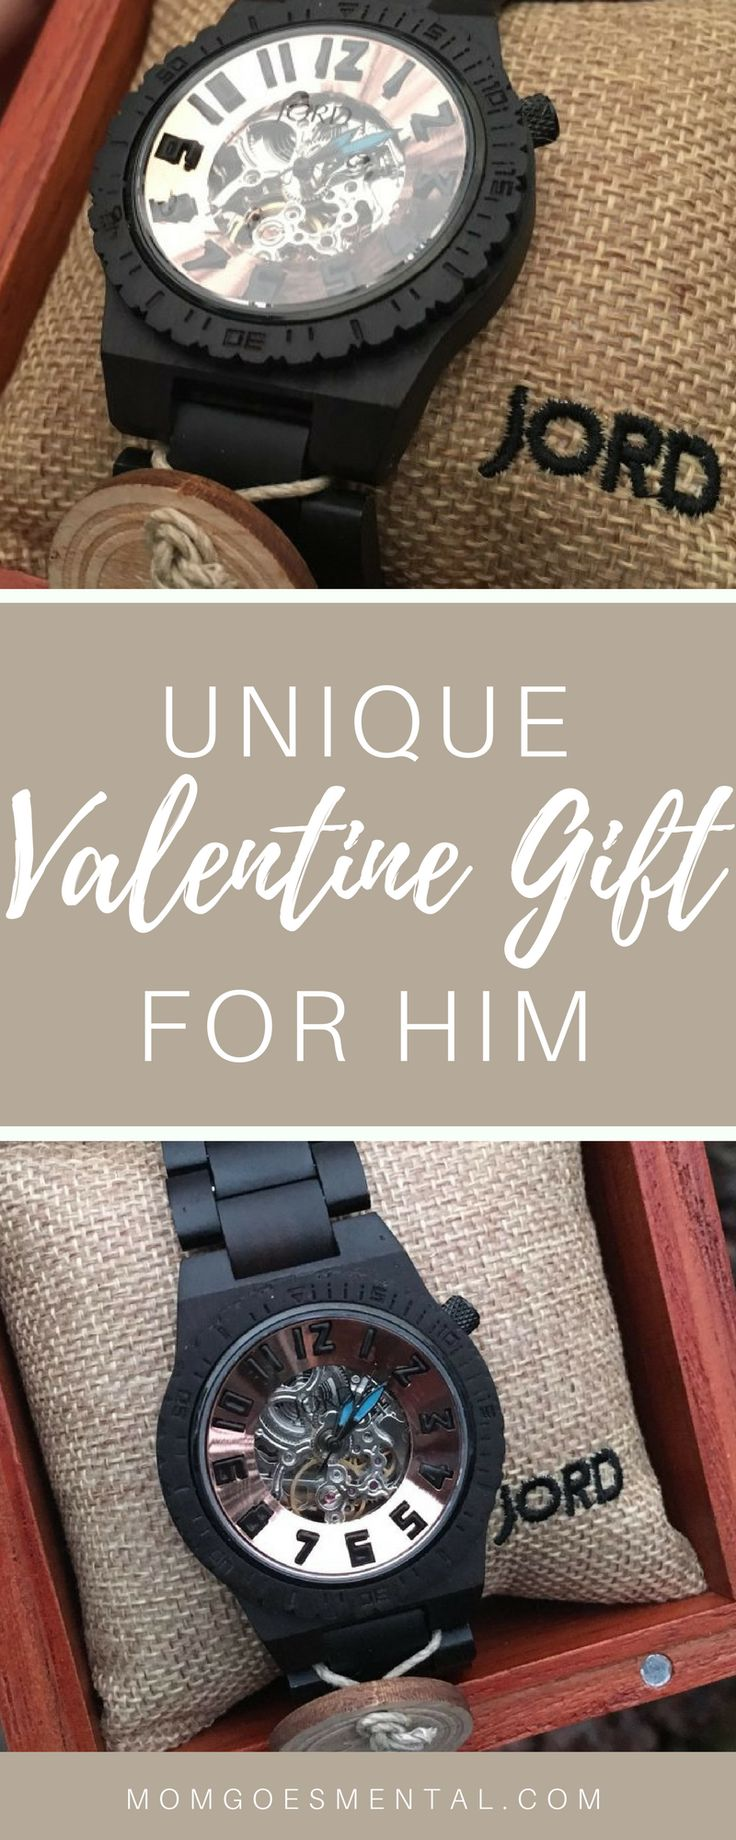 Valentine Gift Ideas for Men - Check out this unique wooden watch from JORD watches! Perfect as an edgy valentine's day gift. >> https://www.pinterest.com/jordwoodwatches/ #jorddover #jordwatches #jordwatch via @momgoesmental